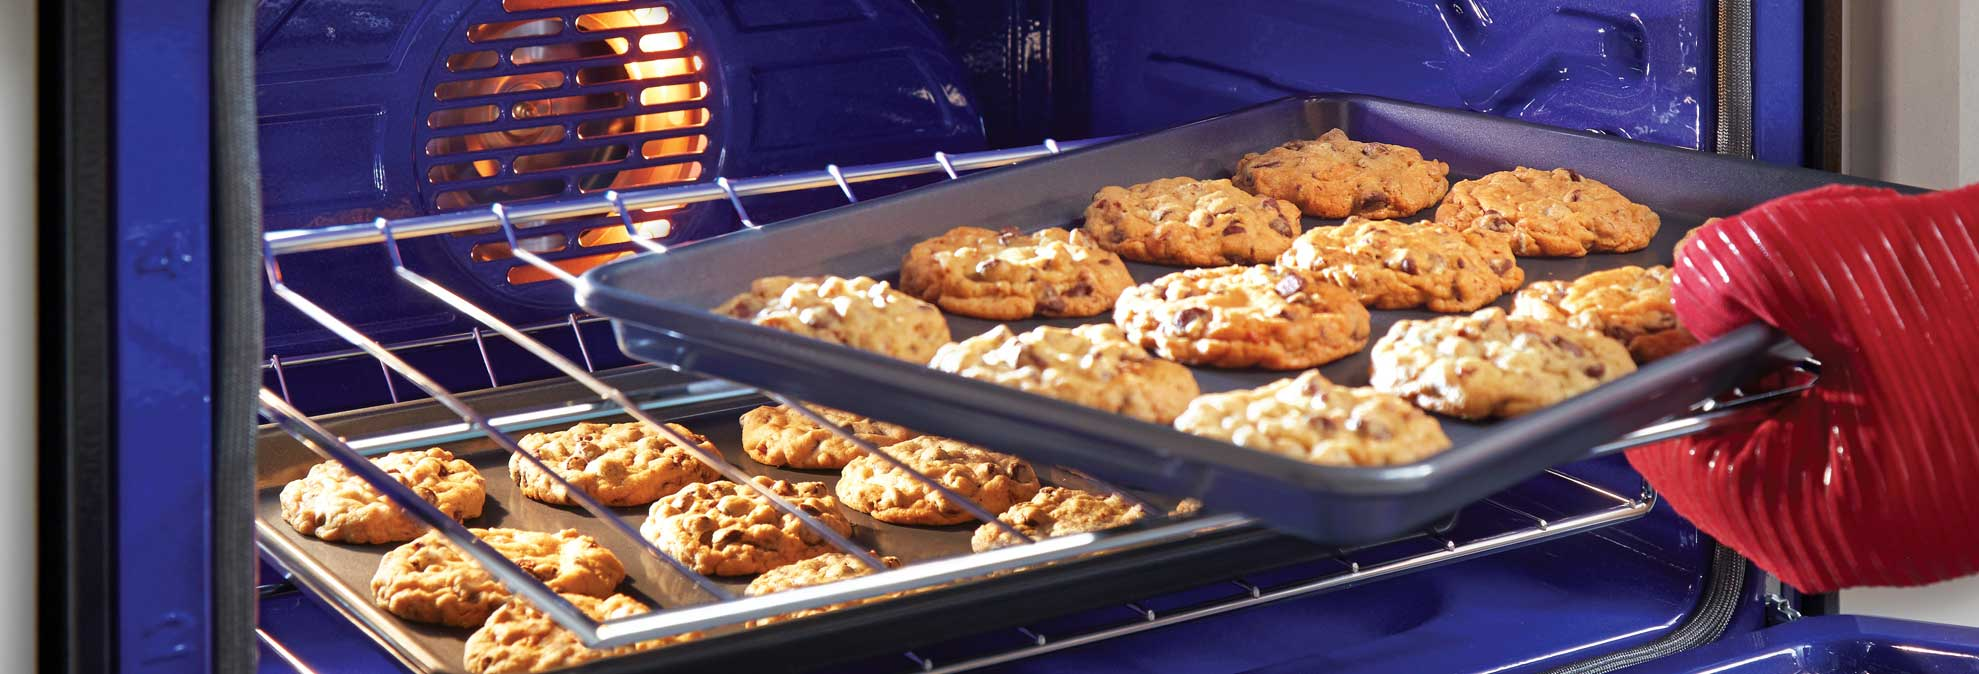 Convection Oven Cooking Tips - Consumer Reports